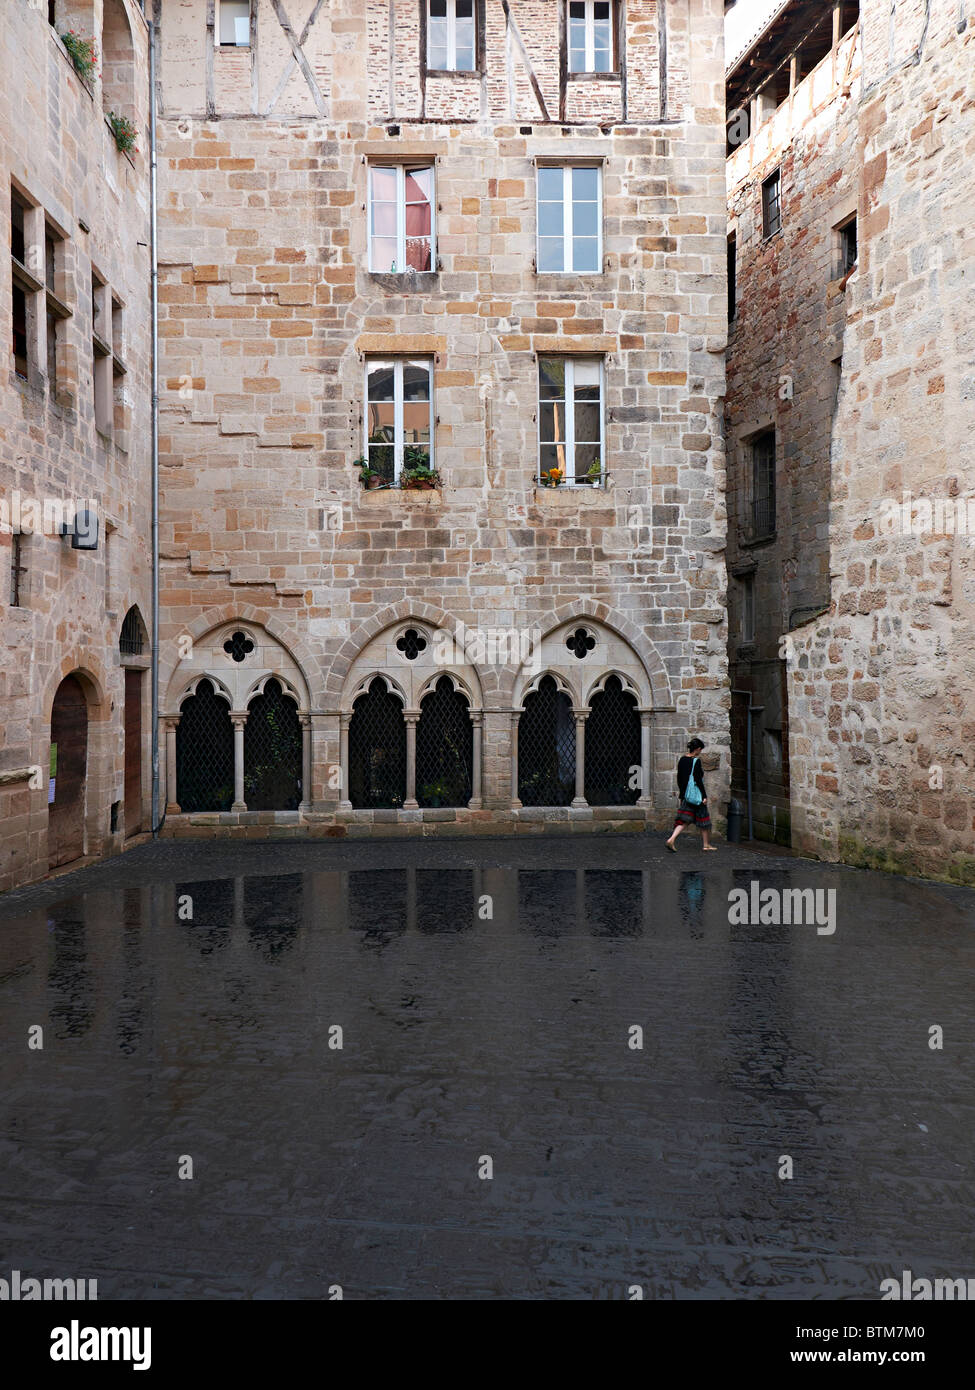 place des escritures in Figeac - Stock Image